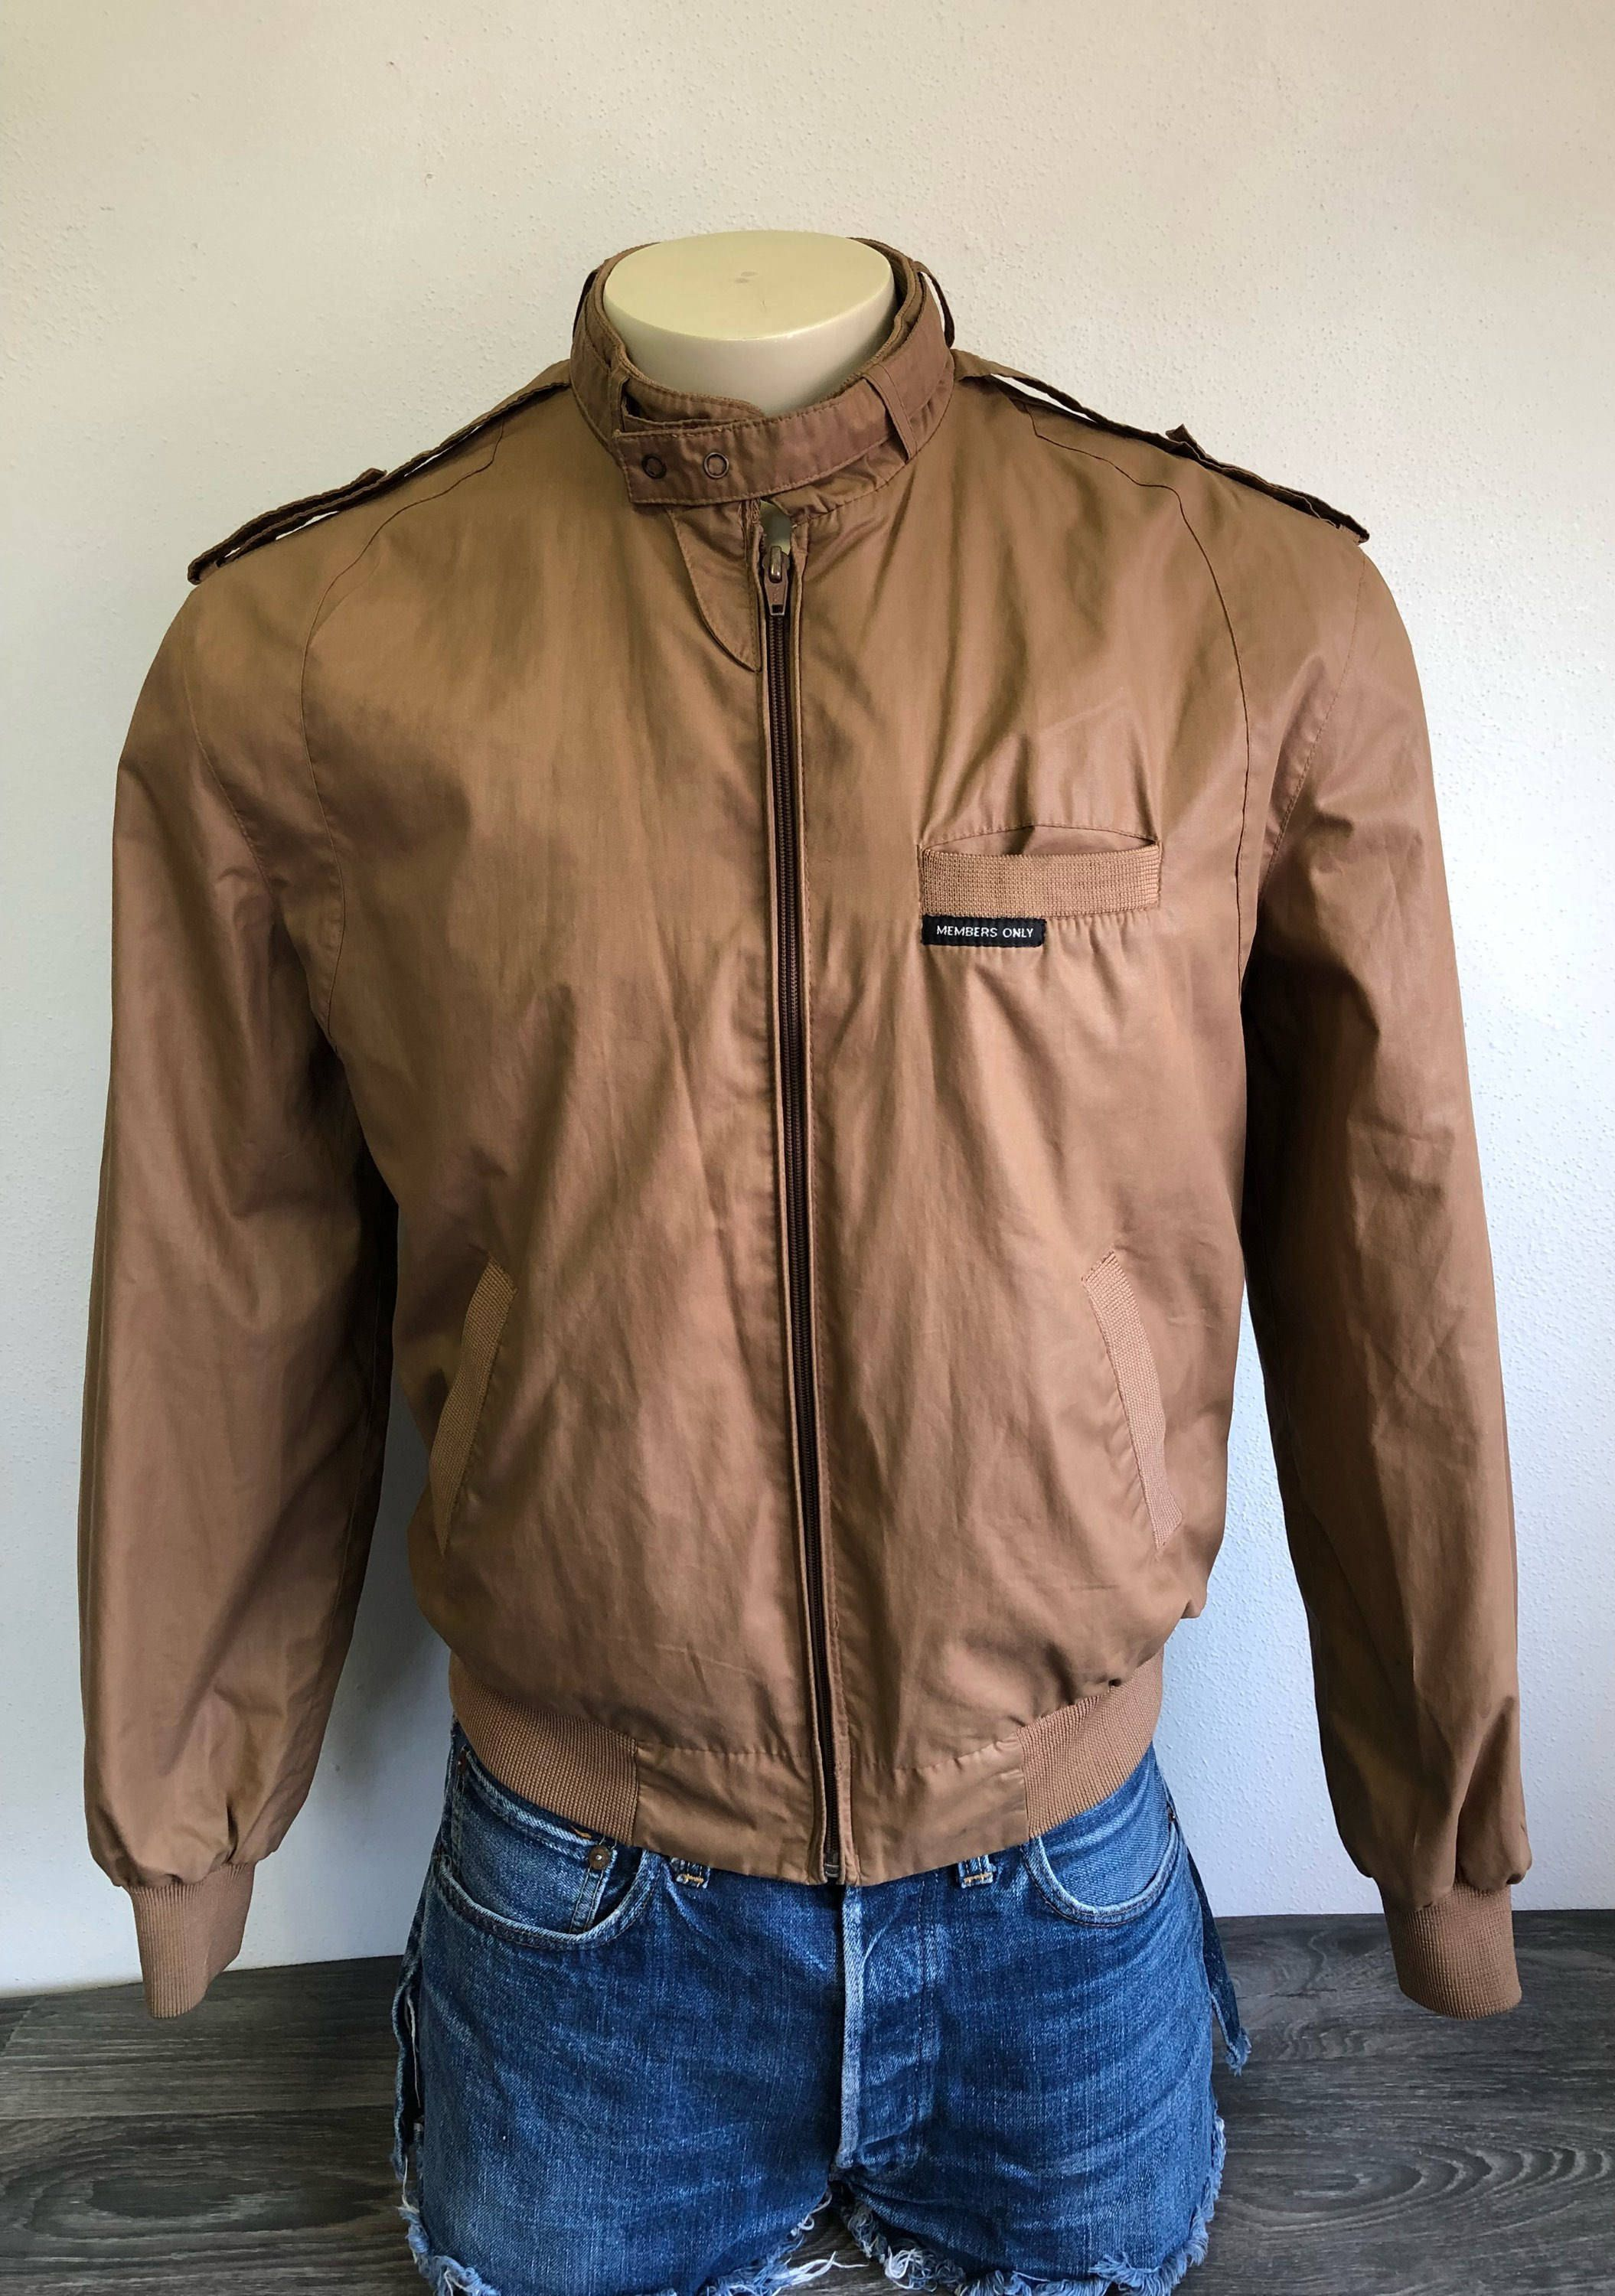 Mens Jacket Vintage Men's Leather Jacket Cafe Racer Brown leather Coat Members Only Style Hipster 80's motorcycle jacket Brown Sz M USA FA4atymAl